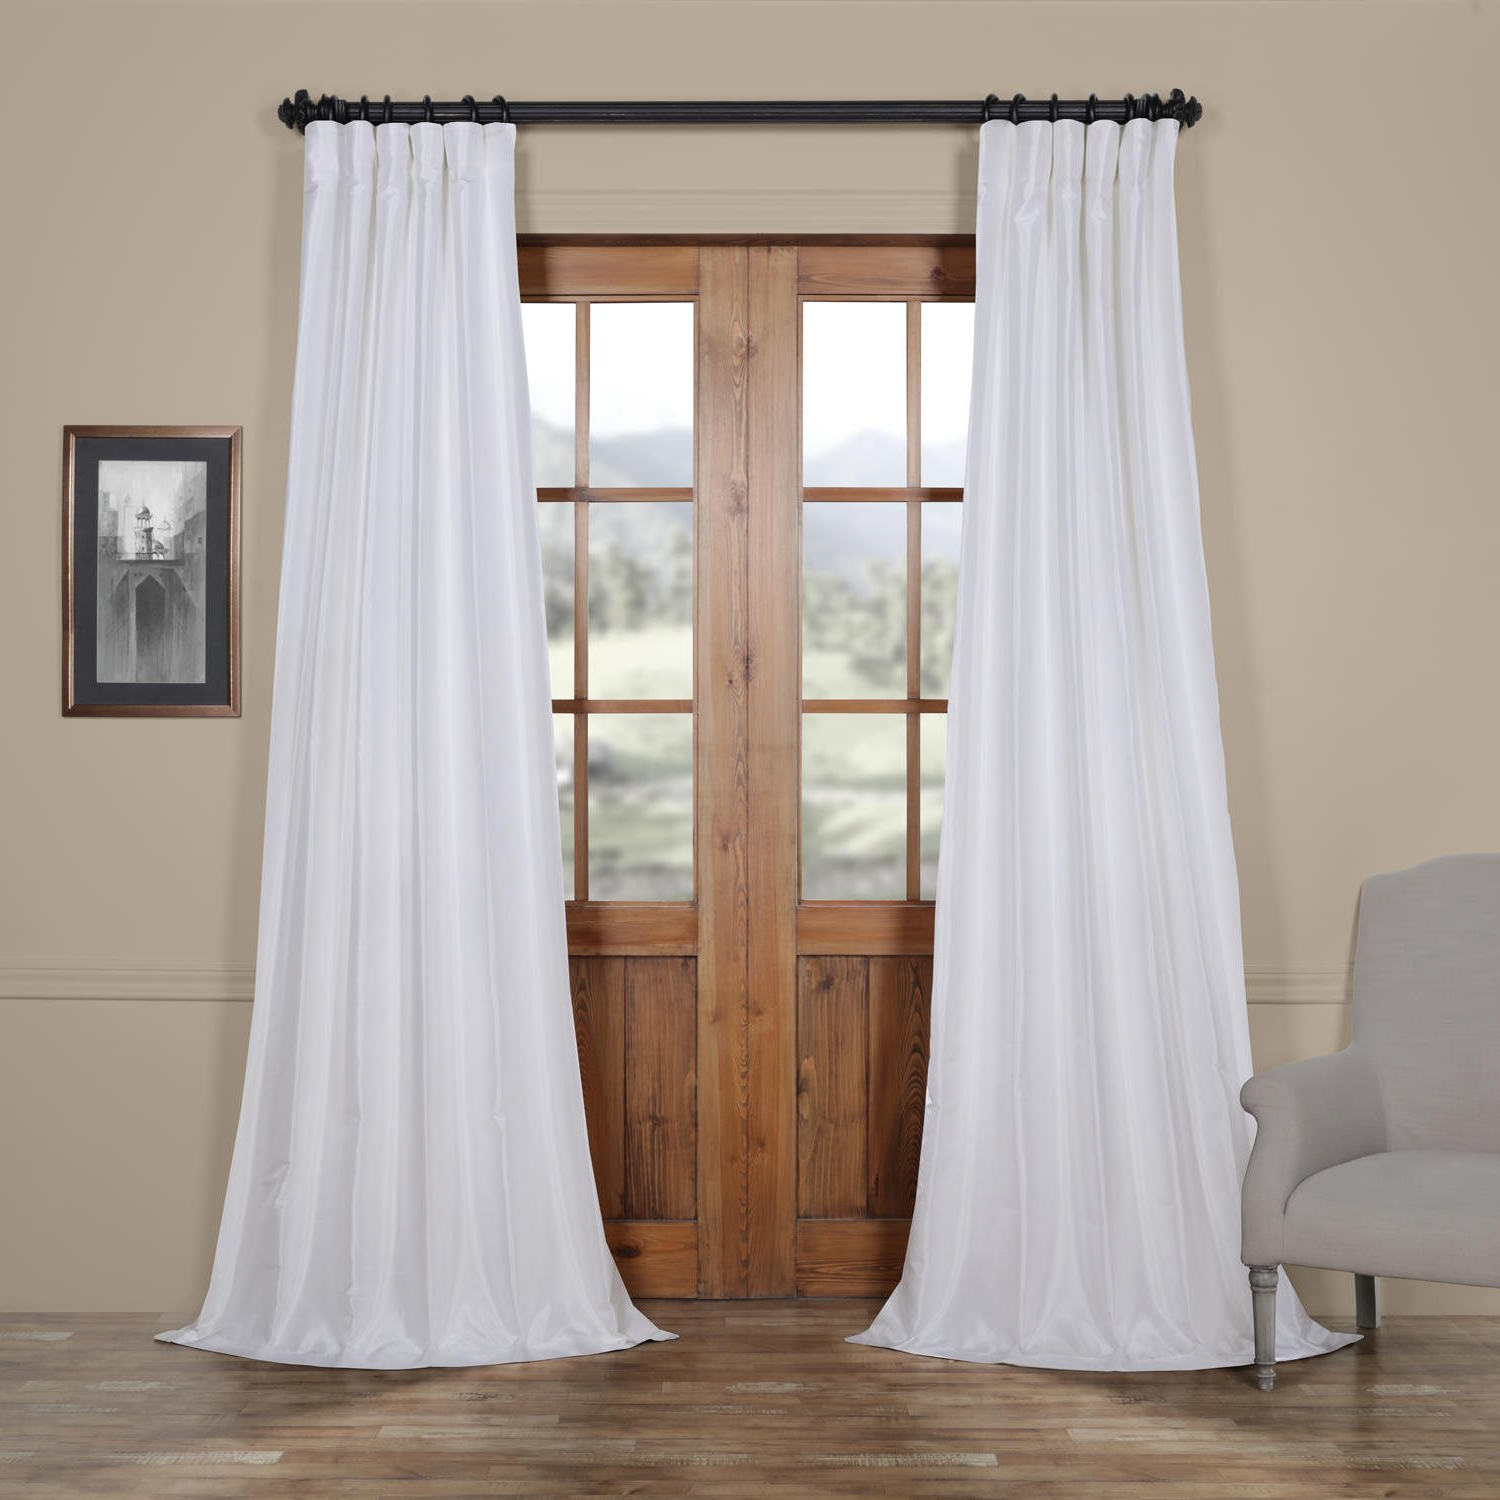 Recent Details About Half Price Drapes Pdch Kbs1 84 Vintage Textured Faux Dupioni  Silk Curtain, 50 X Regarding Vintage Textured Faux Dupioni Silk Curtain Panels (Gallery 19 of 20)